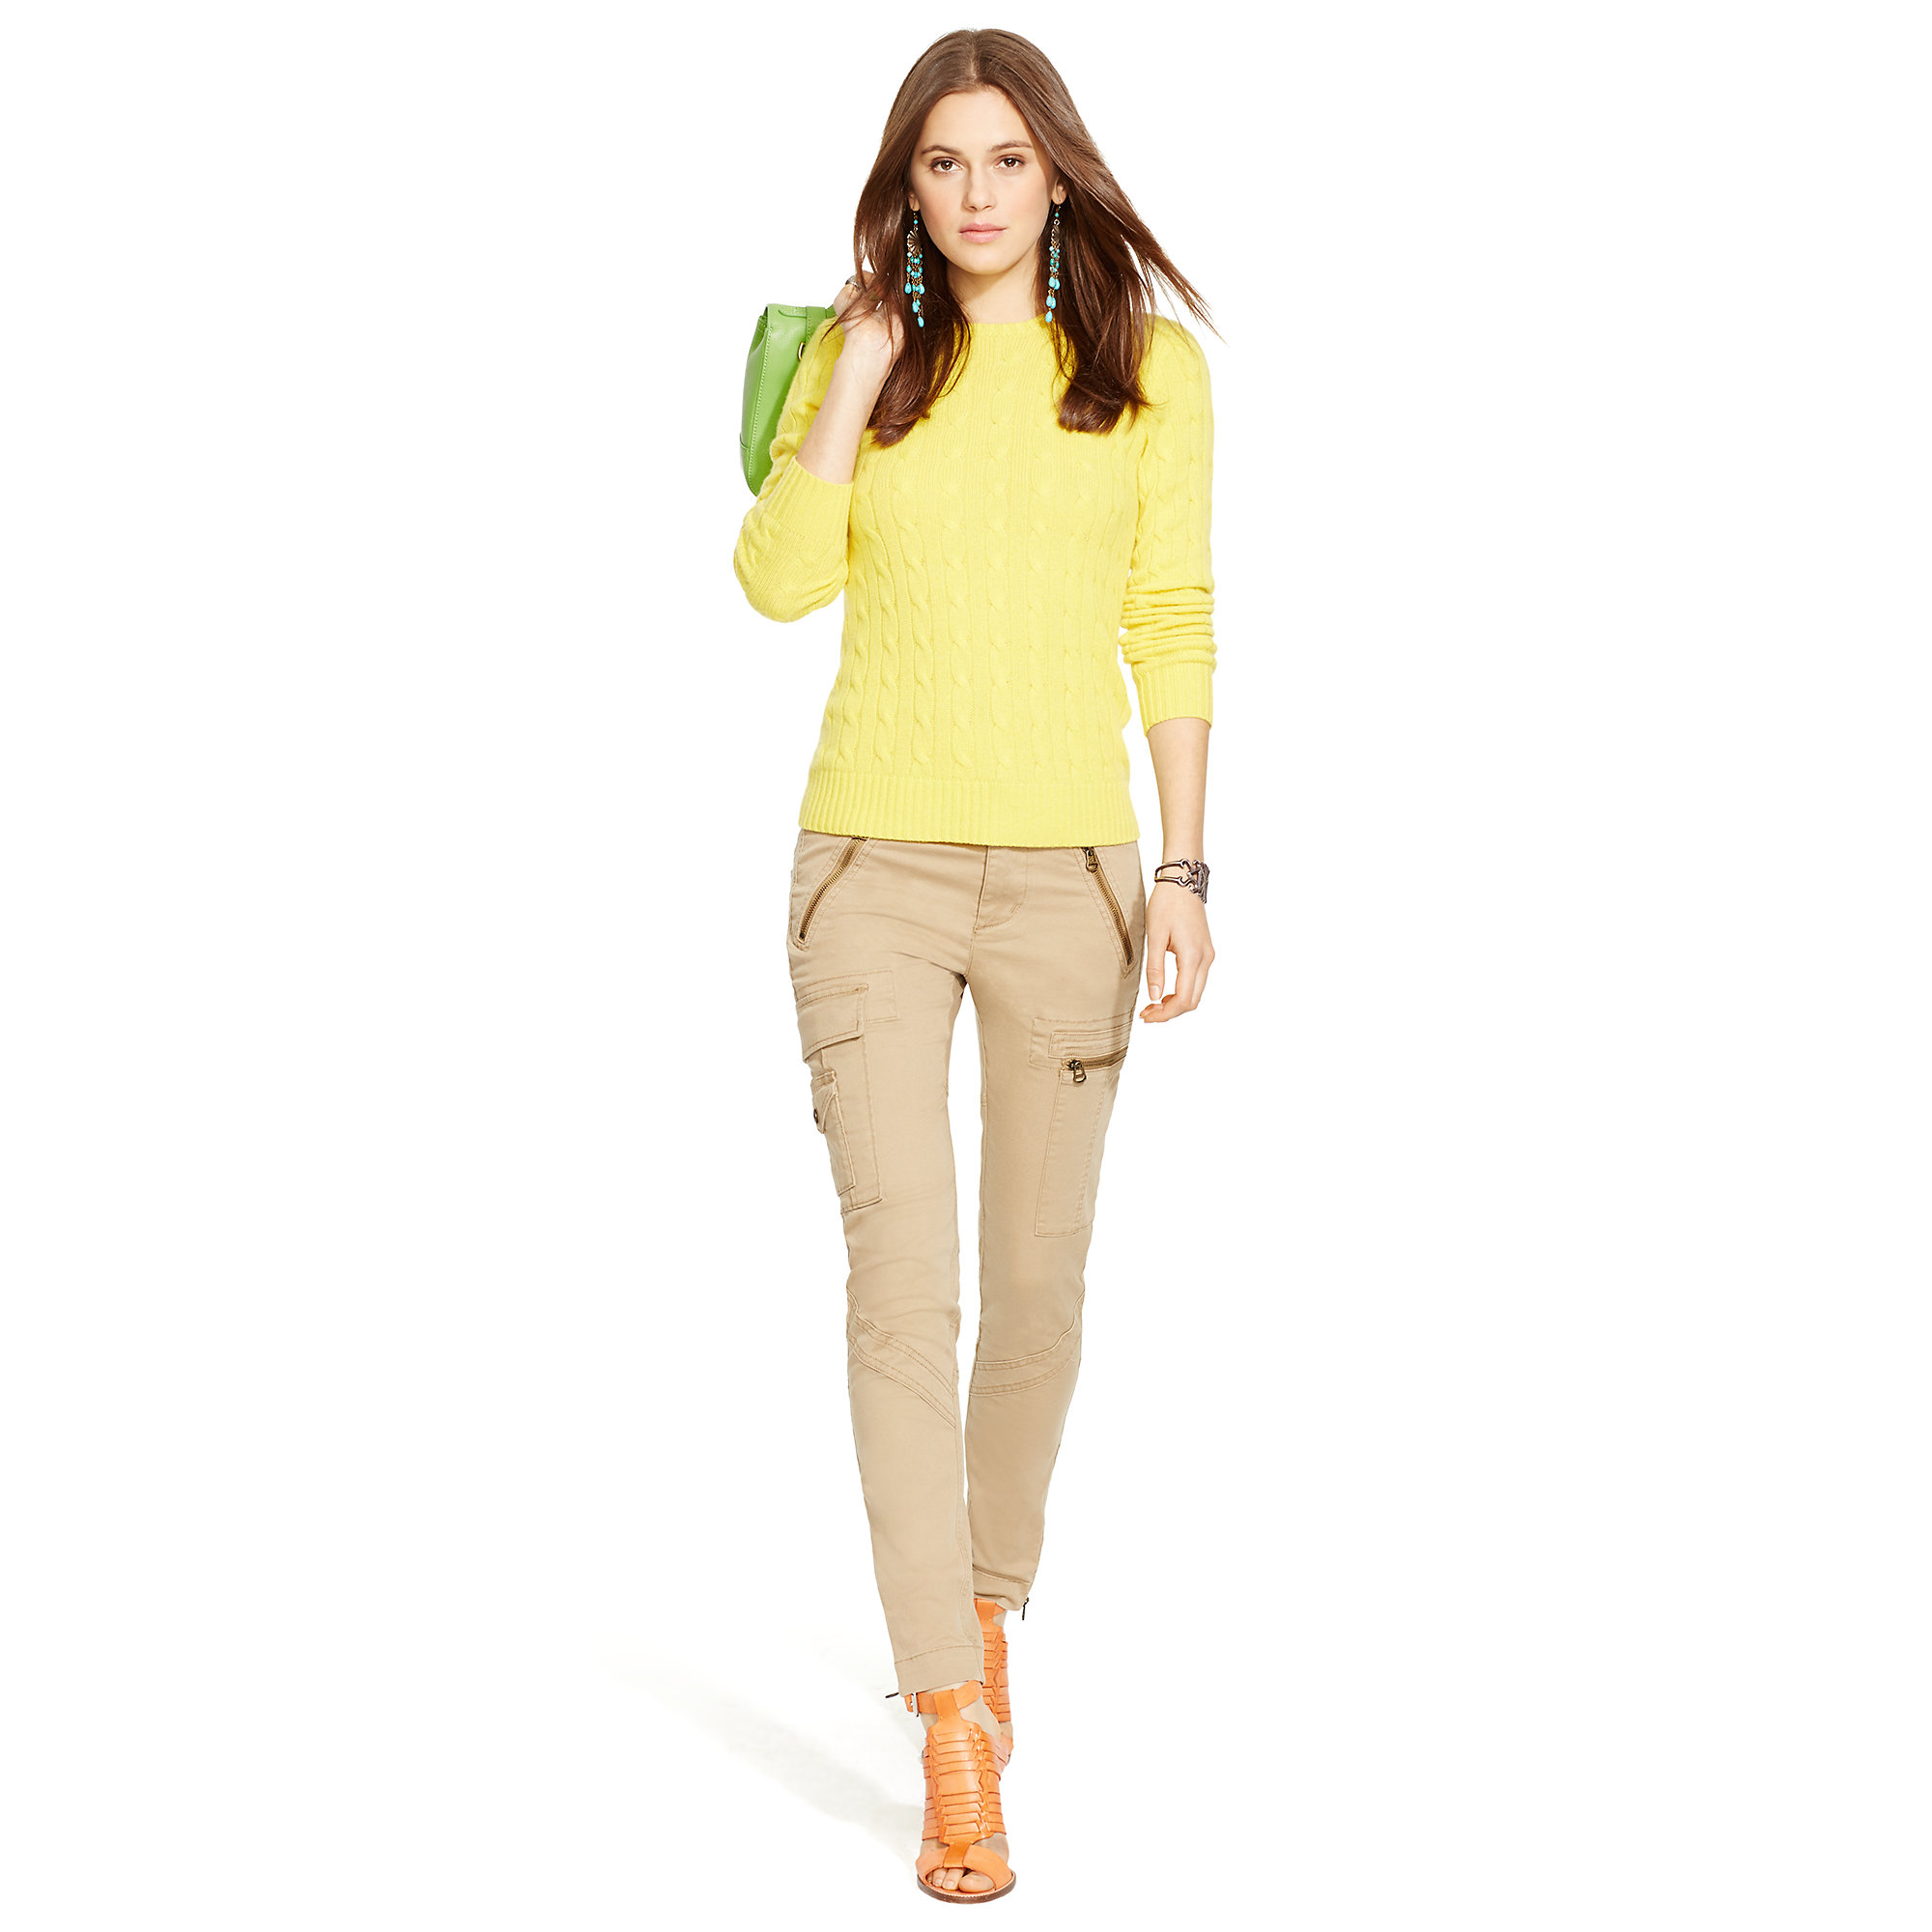 2a20bada Polo Ralph Lauren Stretch Skinny Cargo Pant in Natural - Lyst